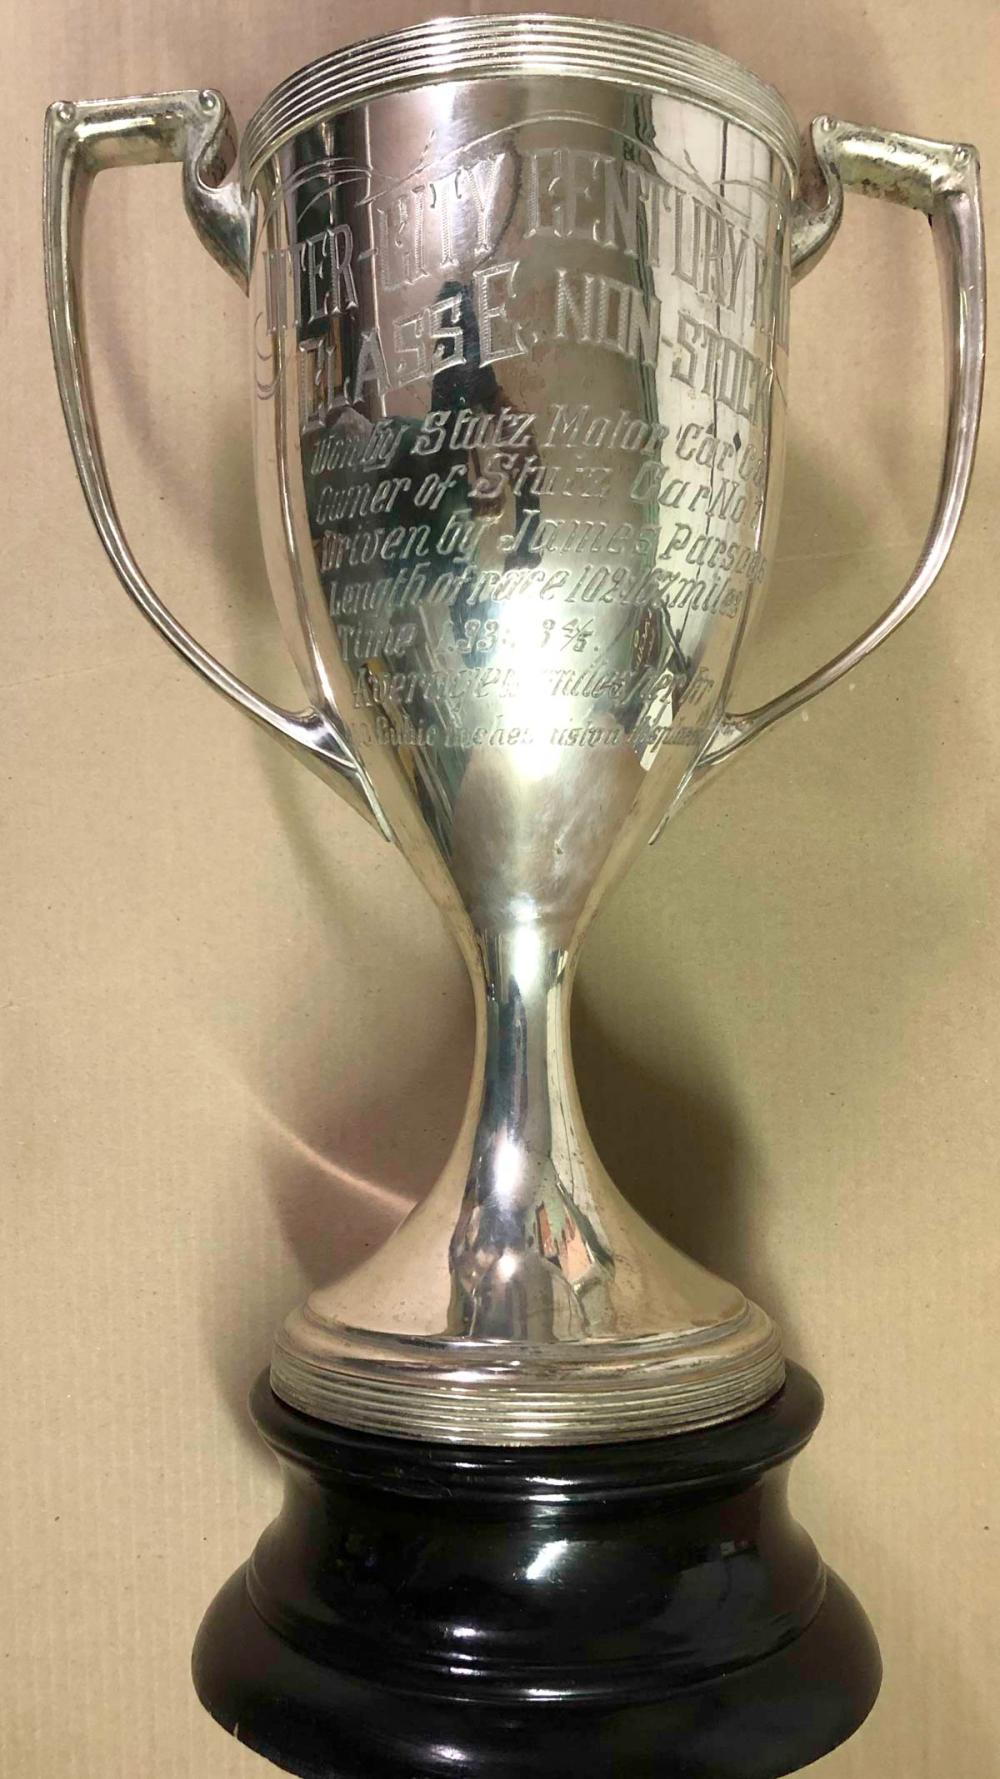 1913 Tacoma race trophy - documented provenance